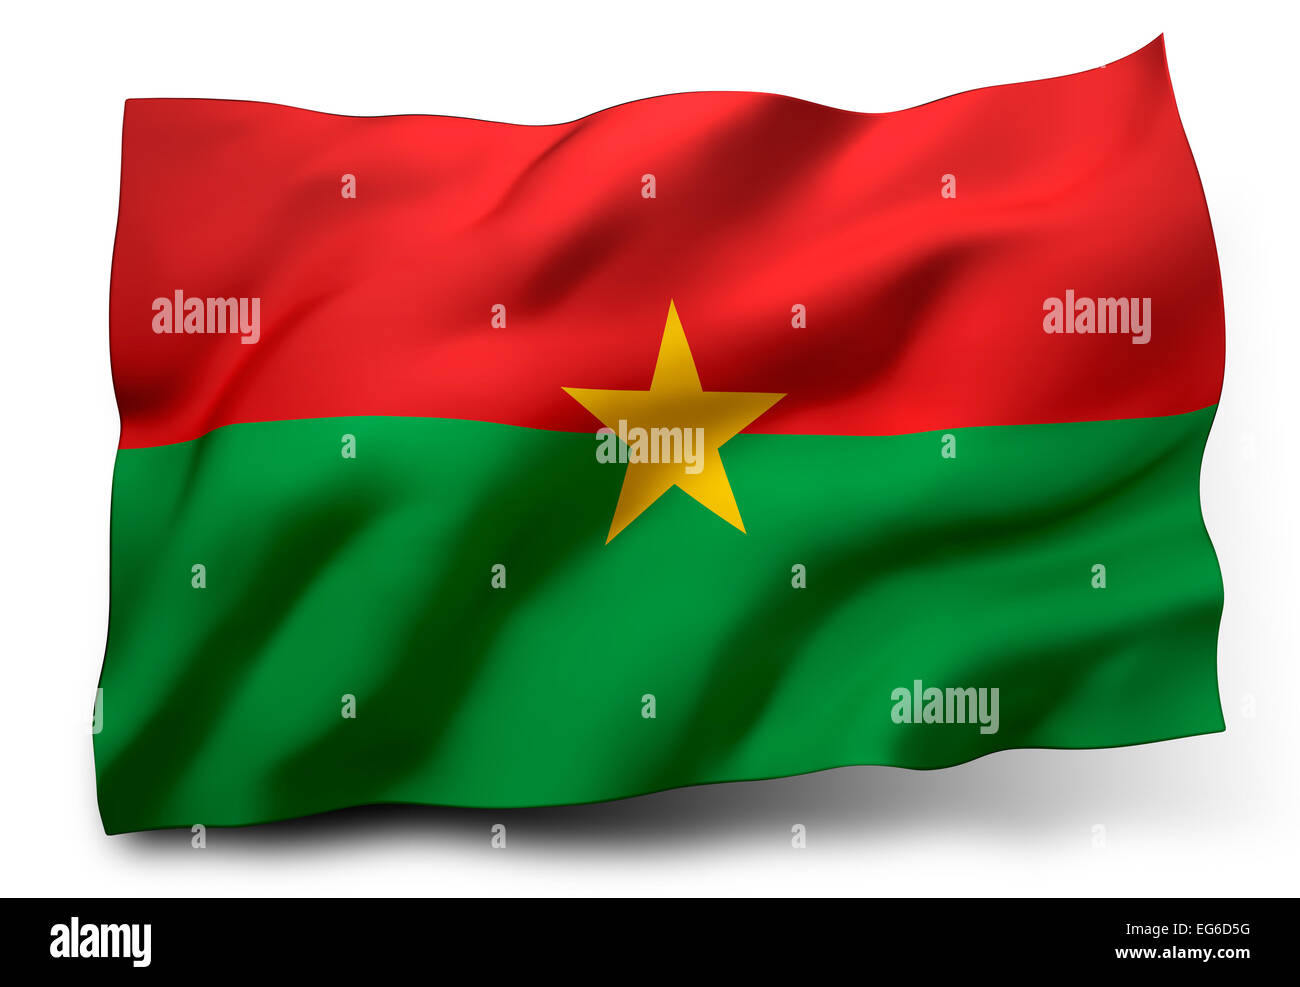 Waving flag of Burkina Faso isolated on white background - Stock Image